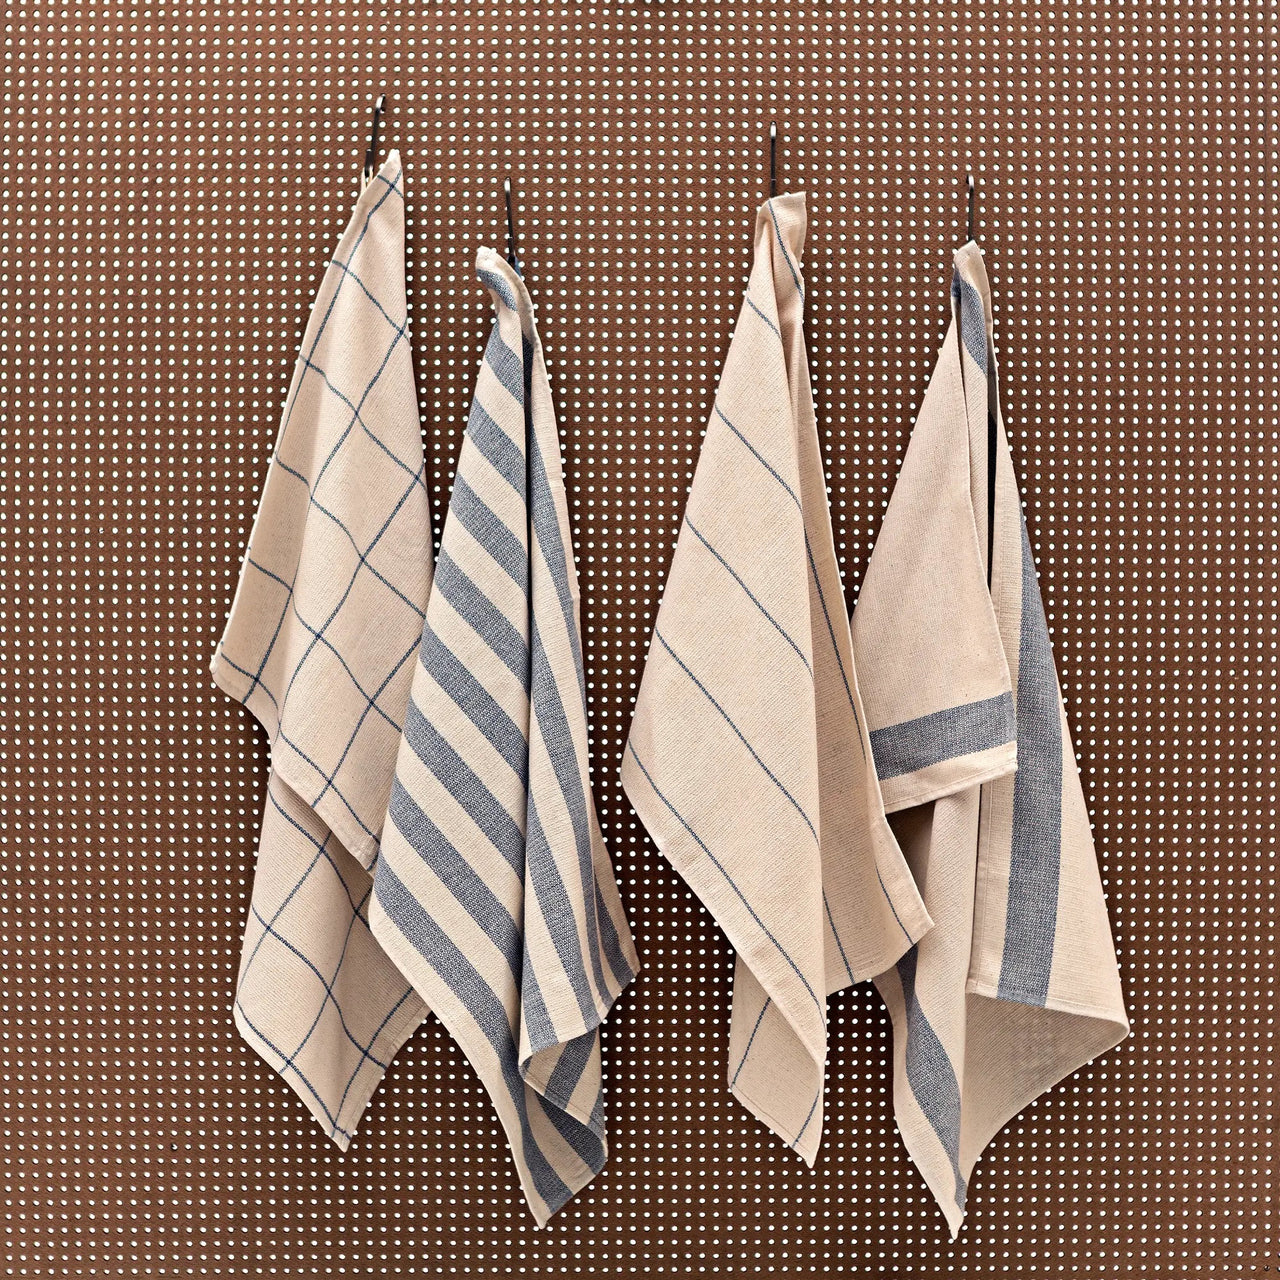 Farmhouse Kitchen Dish Towels . Upcycled Fabric . Set of Four